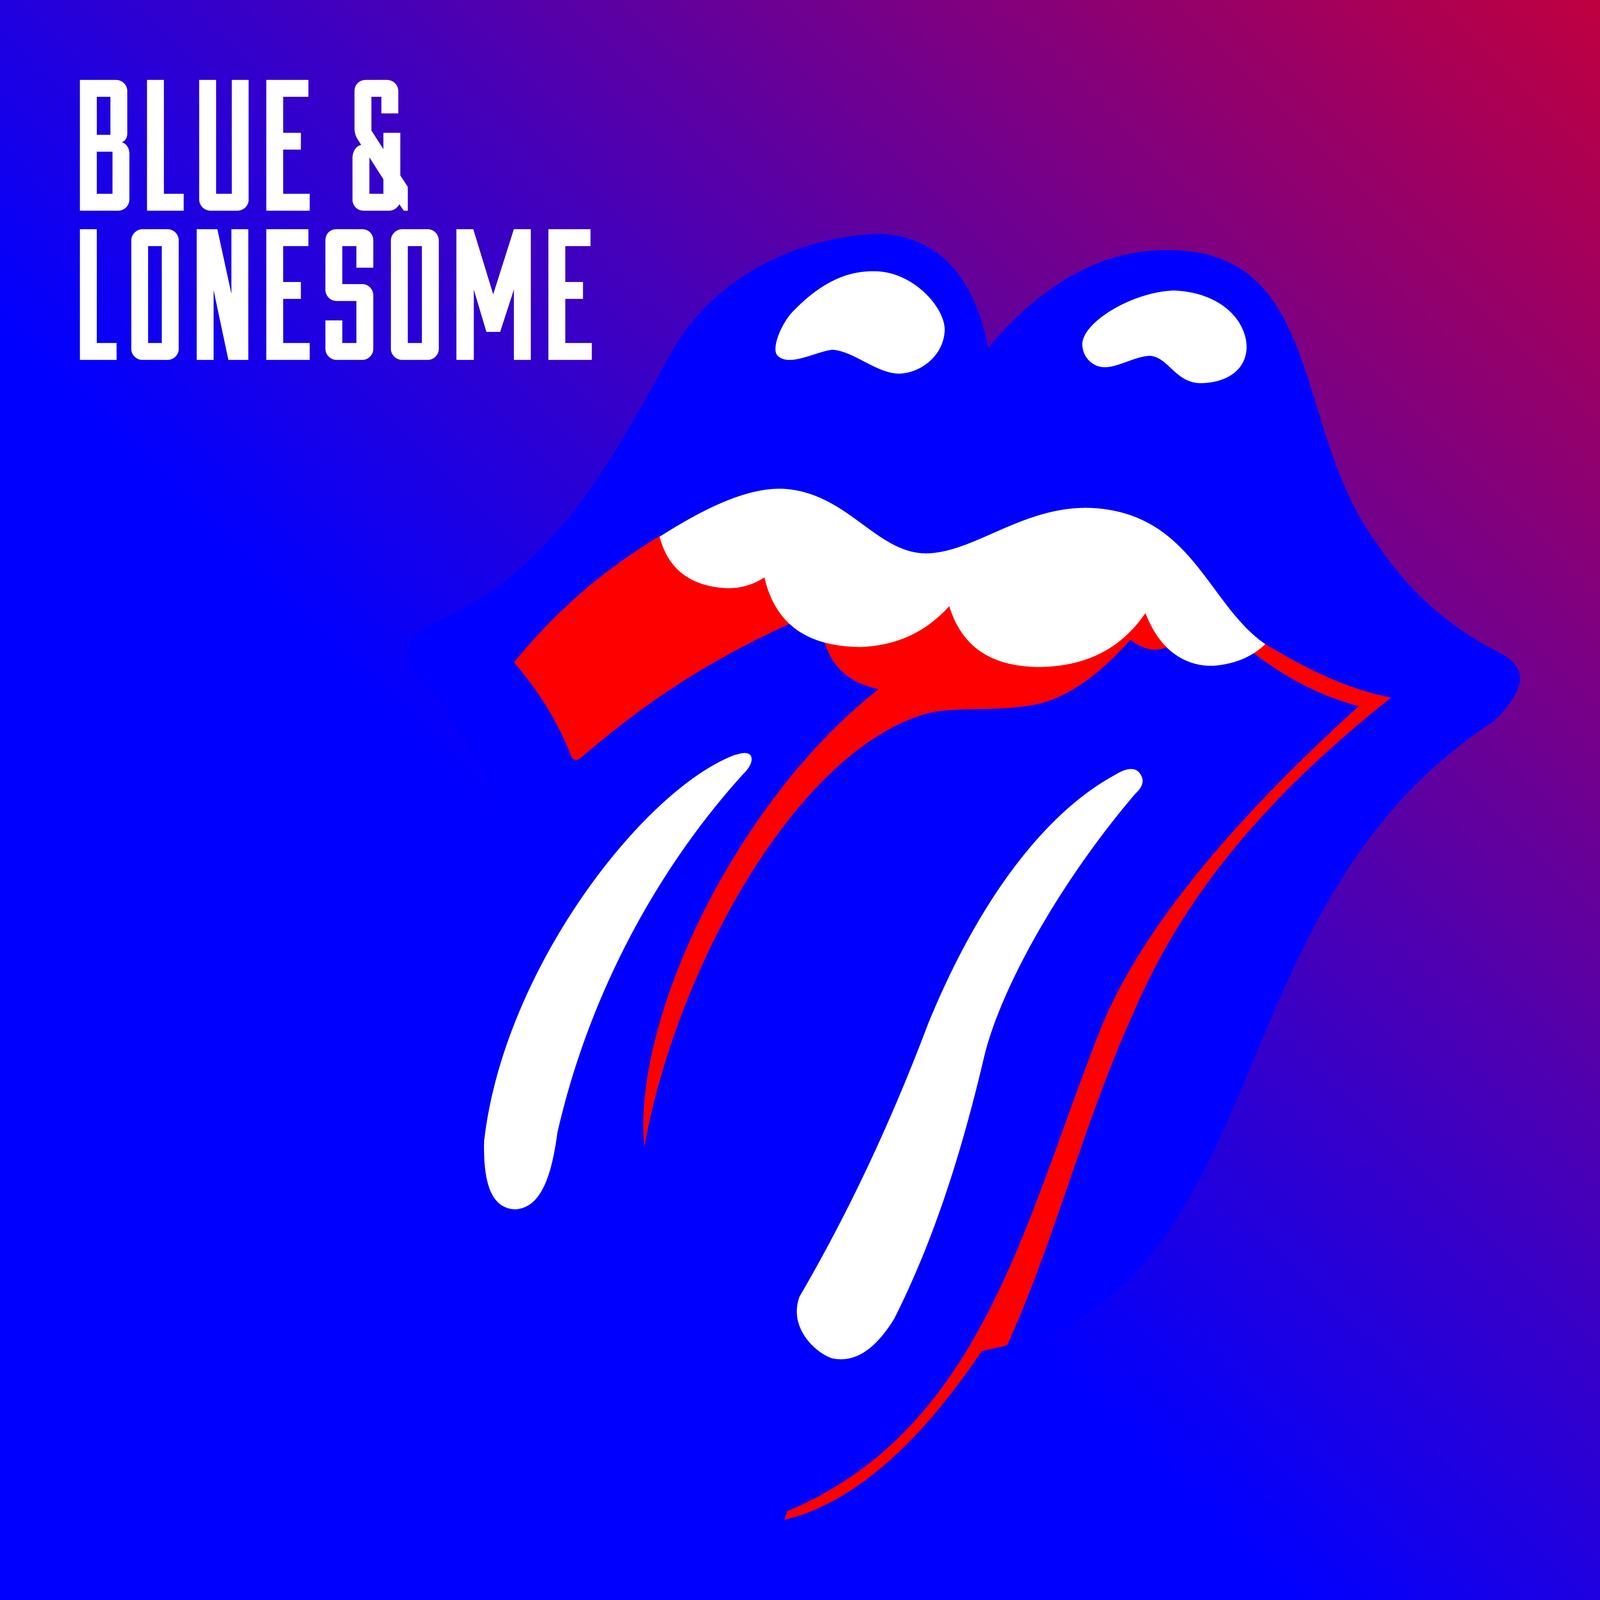 Blue & Lonesome - Standard Jewel Case by The Rolling Stones image